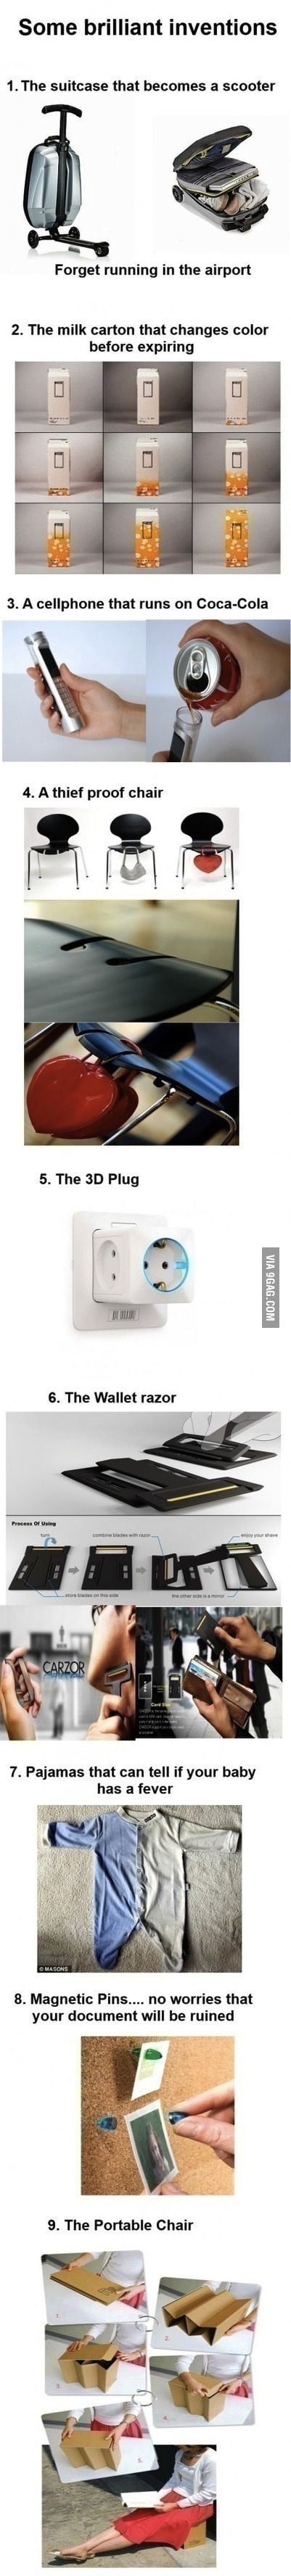 Some brilliant inventions